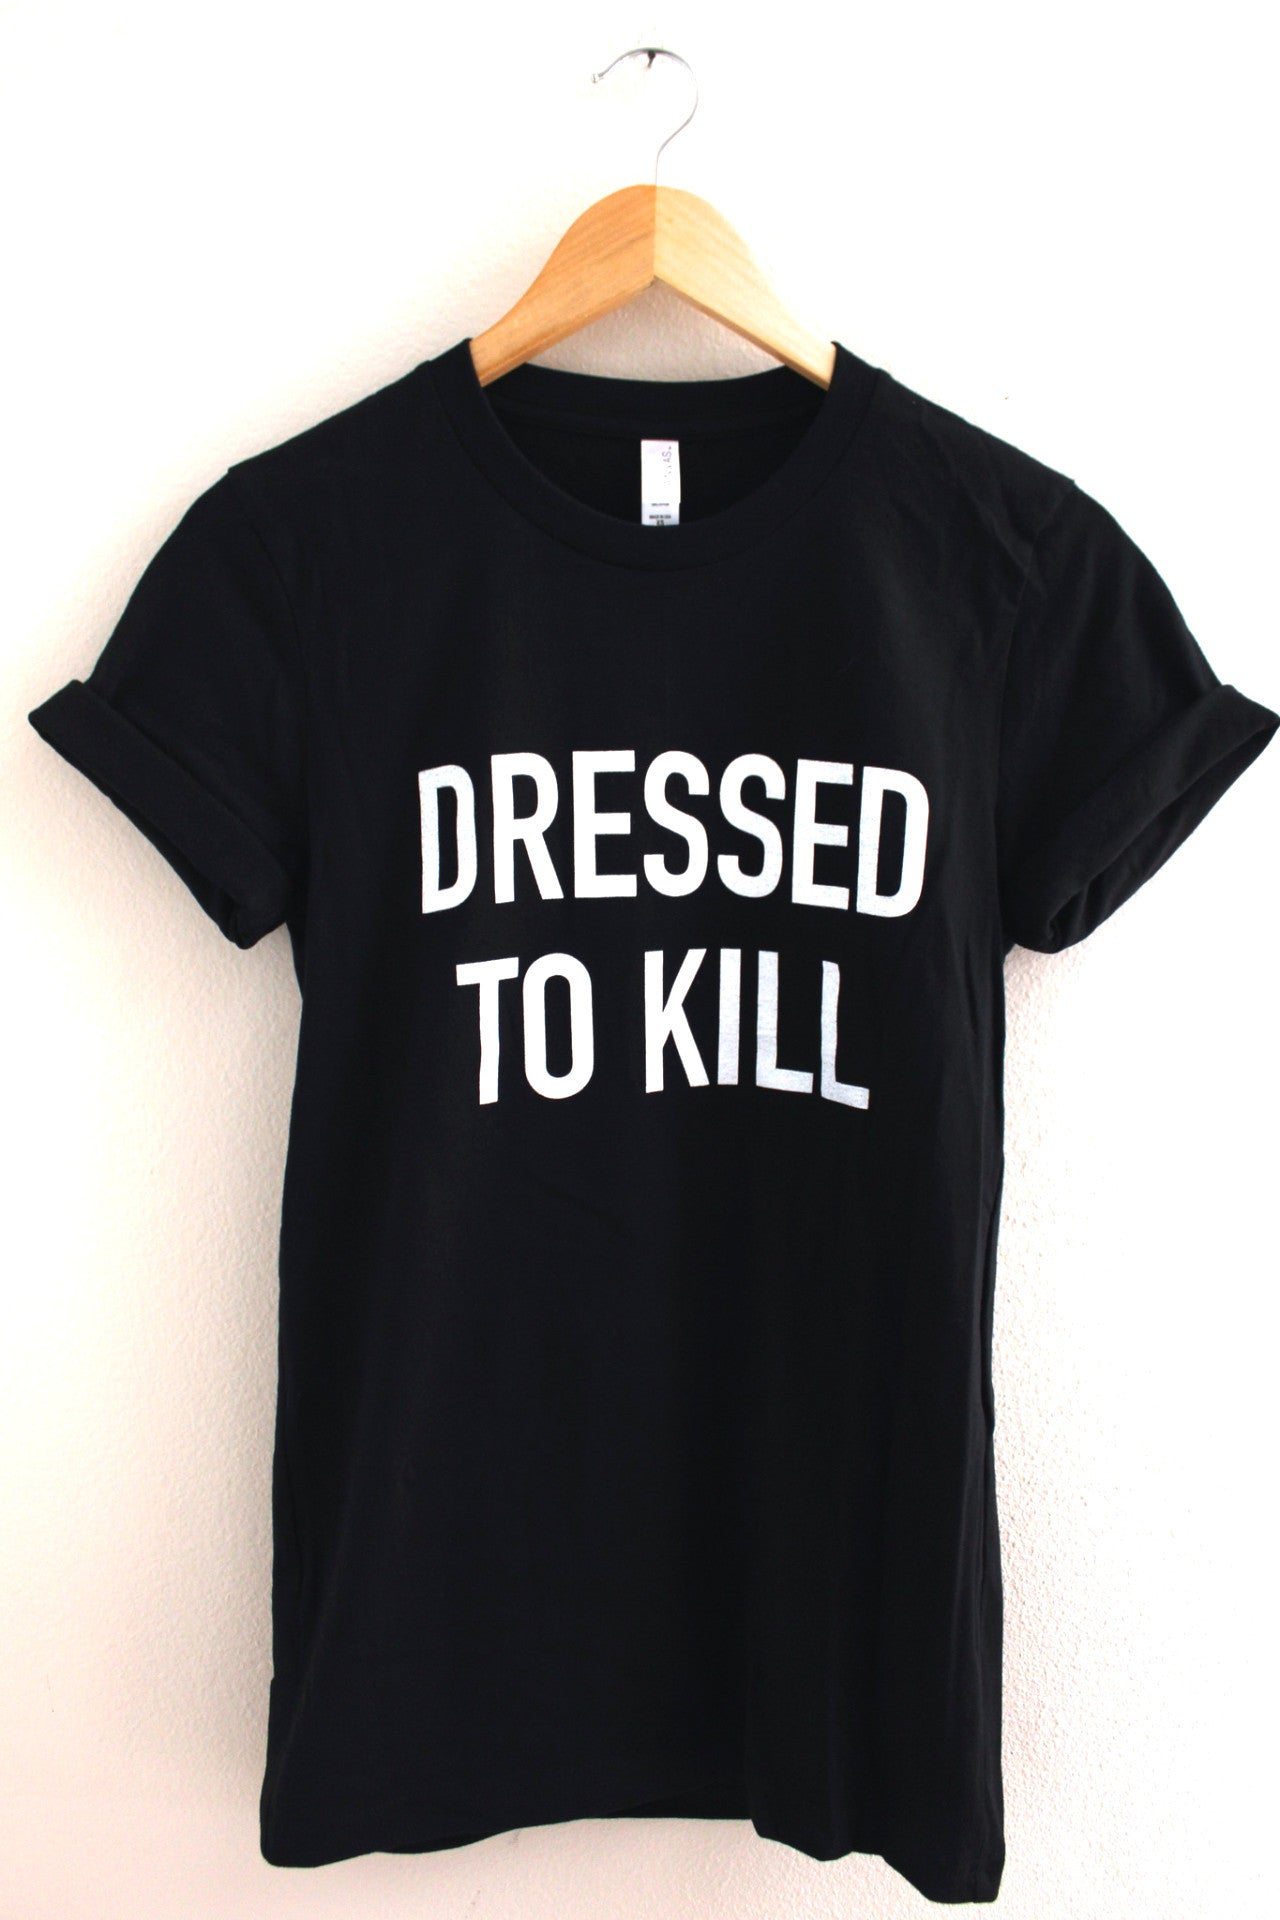 Dressed To Kill Black Graphic Unisex Tee